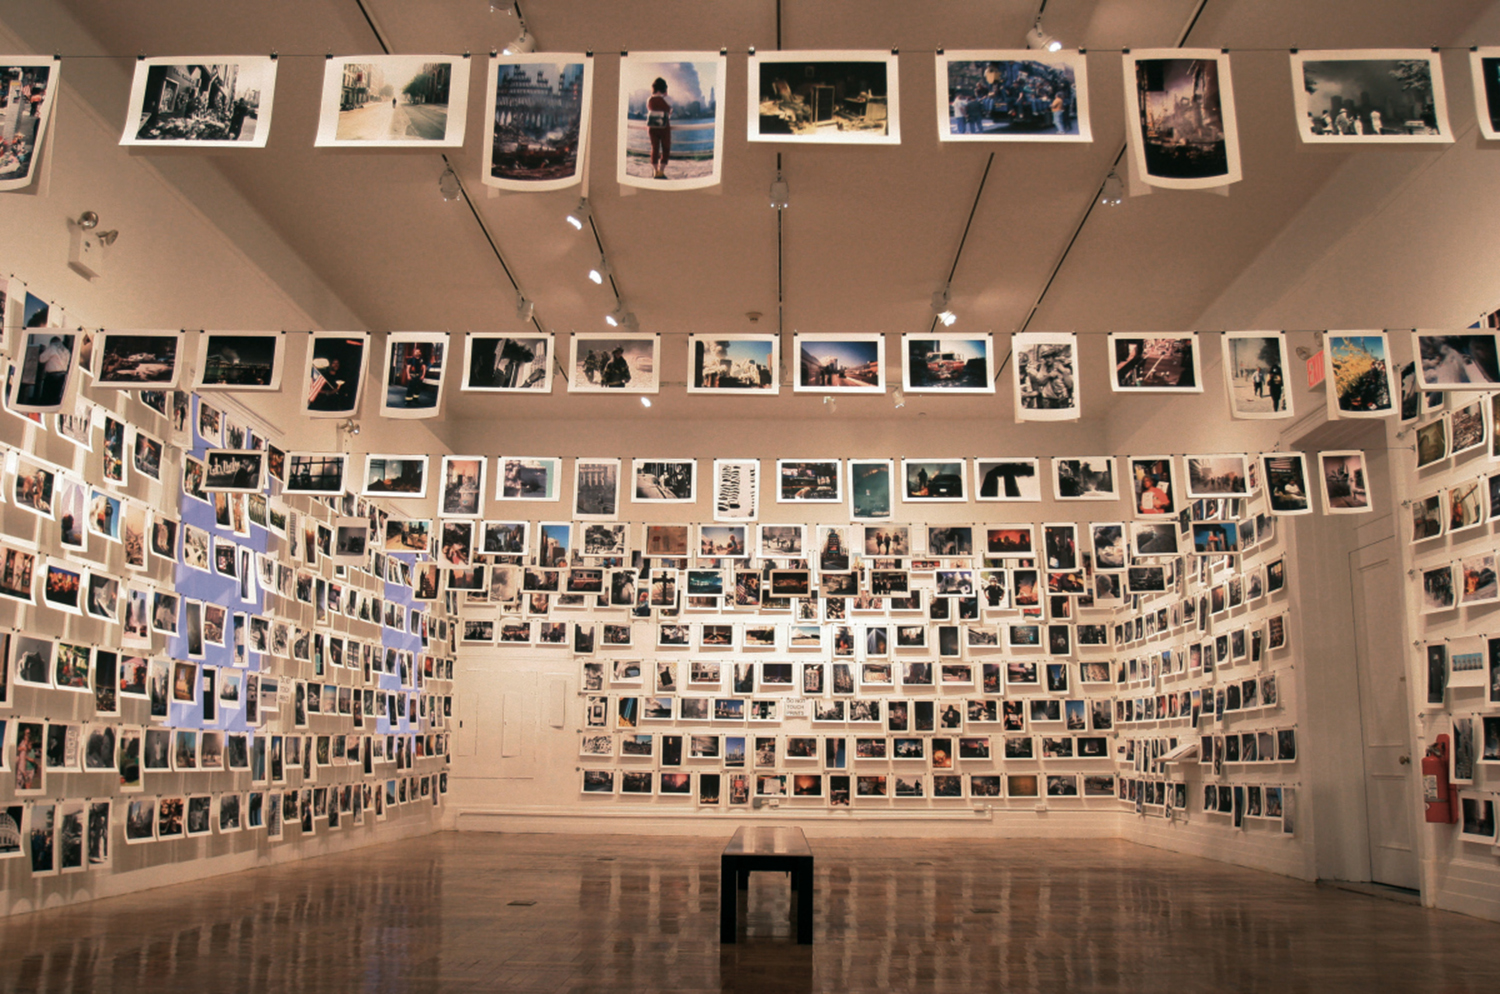 The exhibition here is new york, Prince Street, New York, 2001.